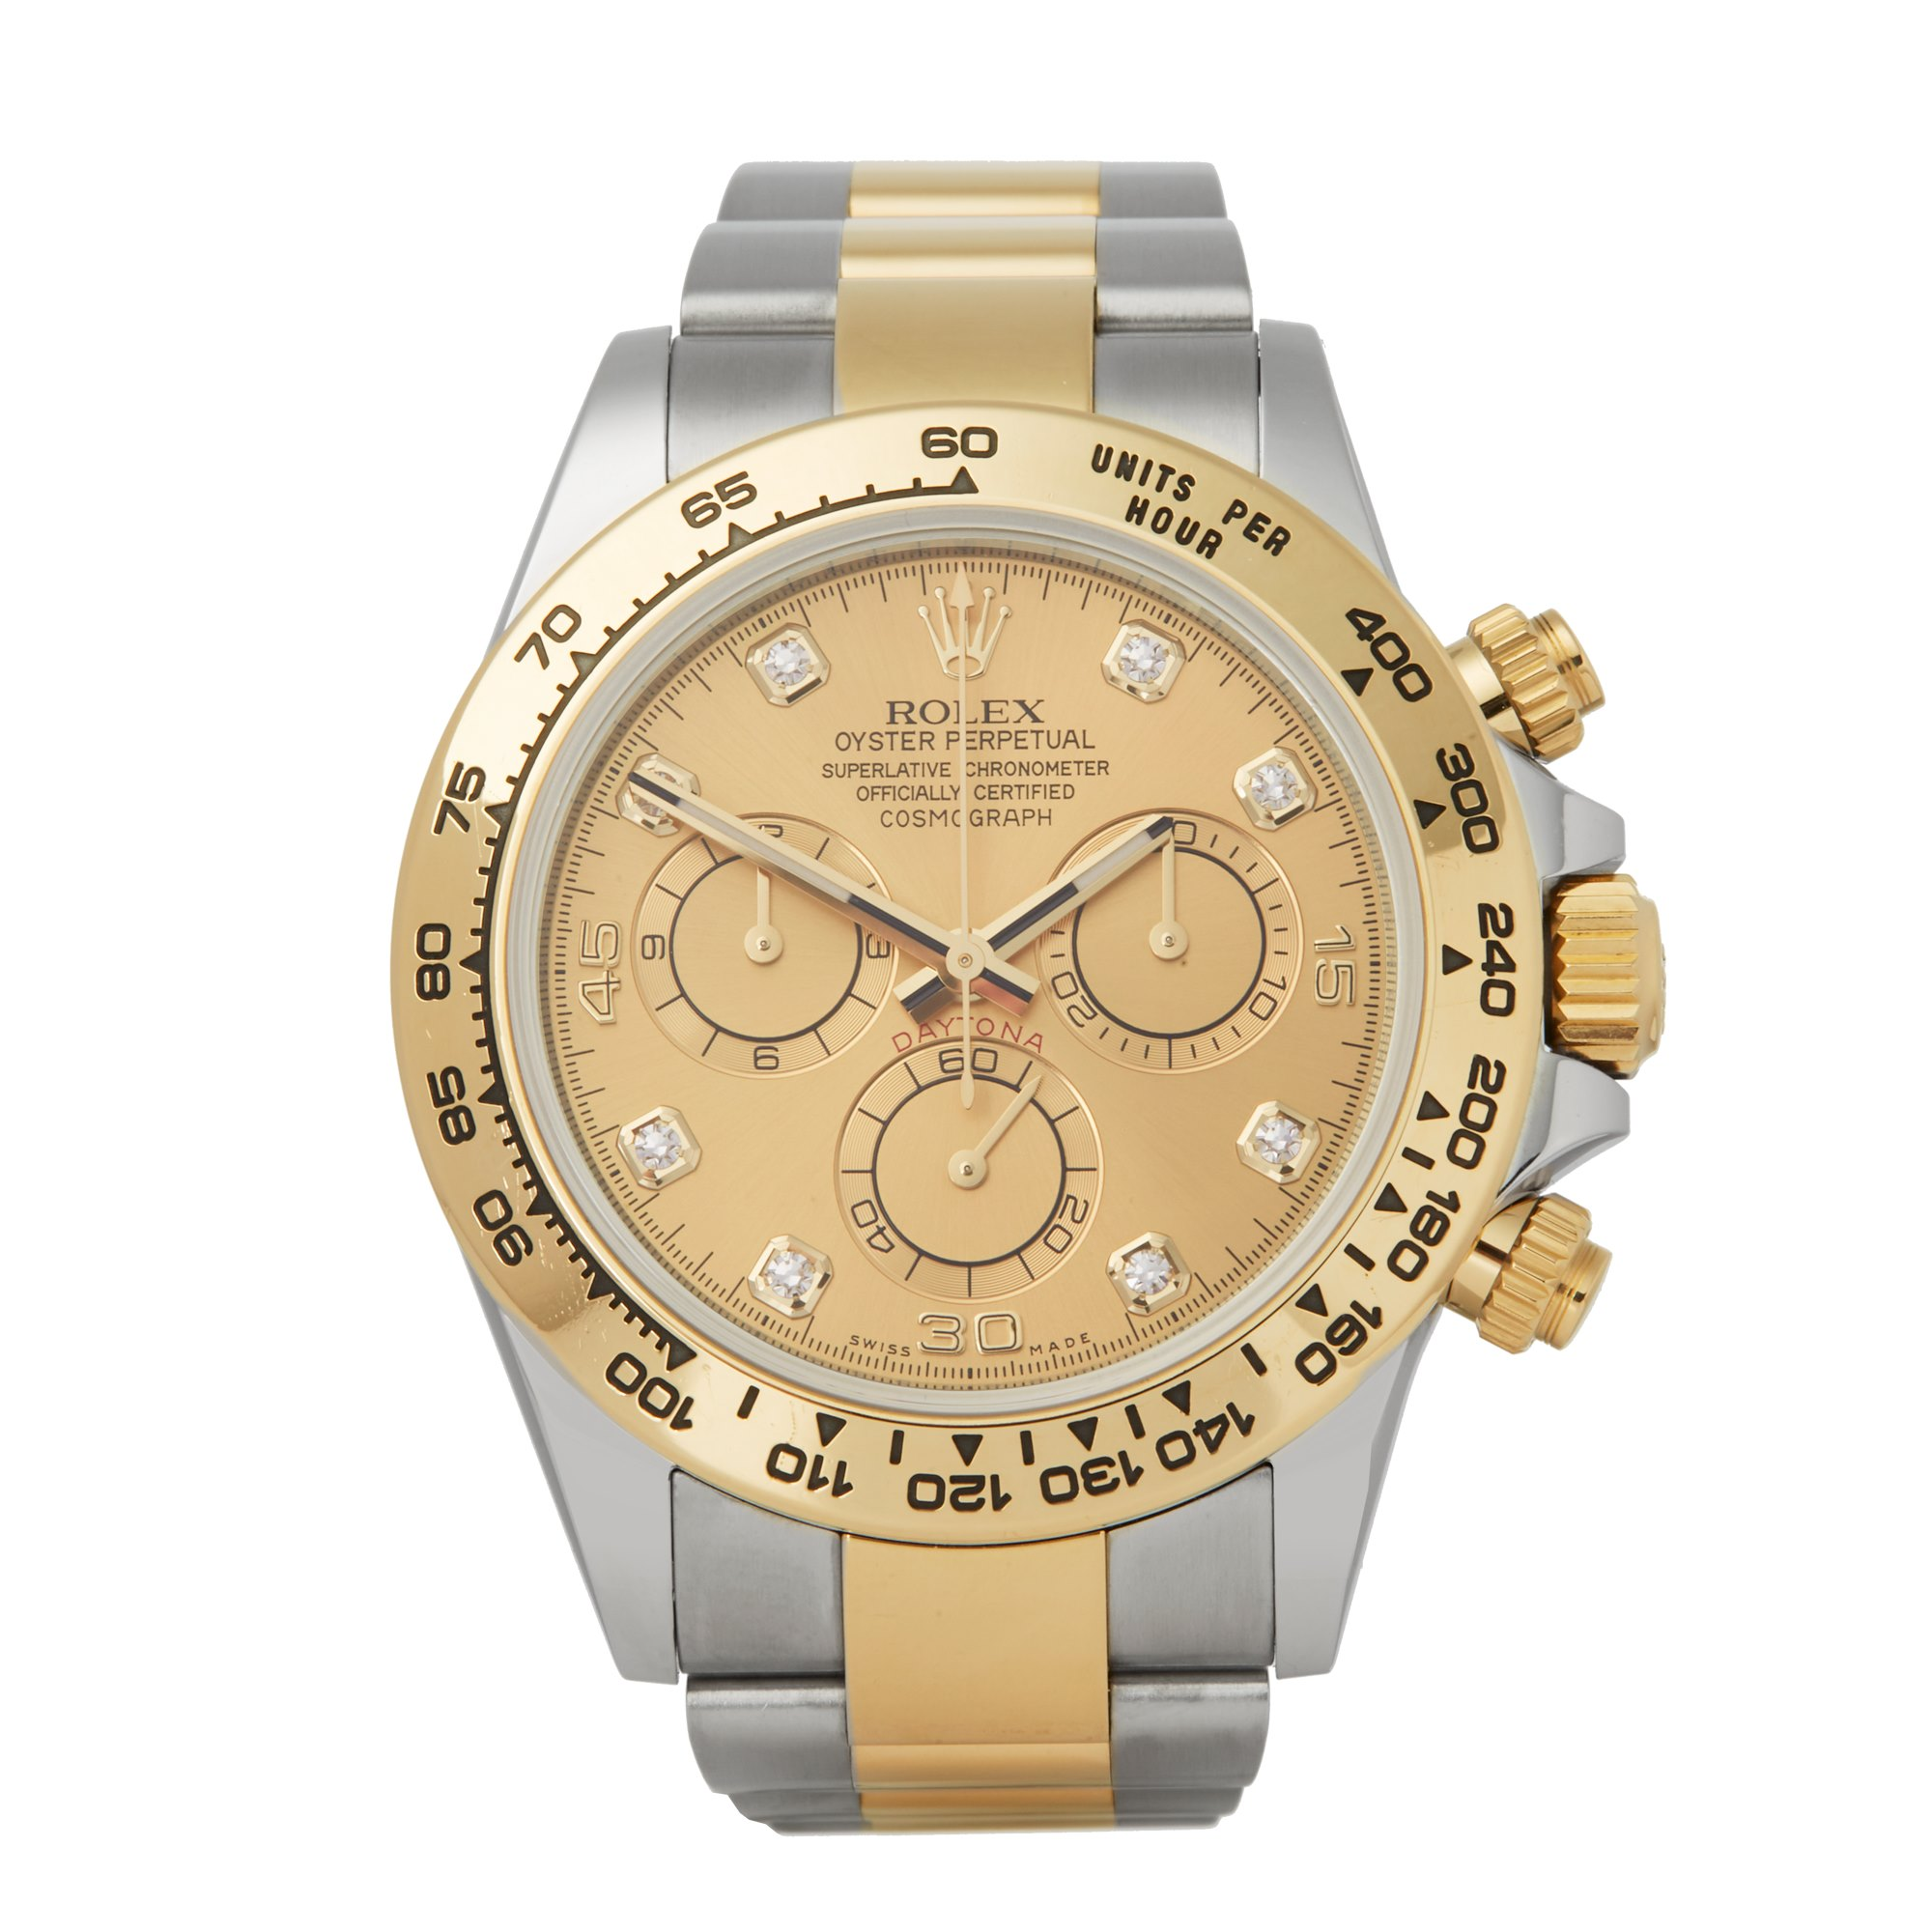 Rolex Daytona Diamond Chronograph Stainless Steel & Yellow Gold 116503